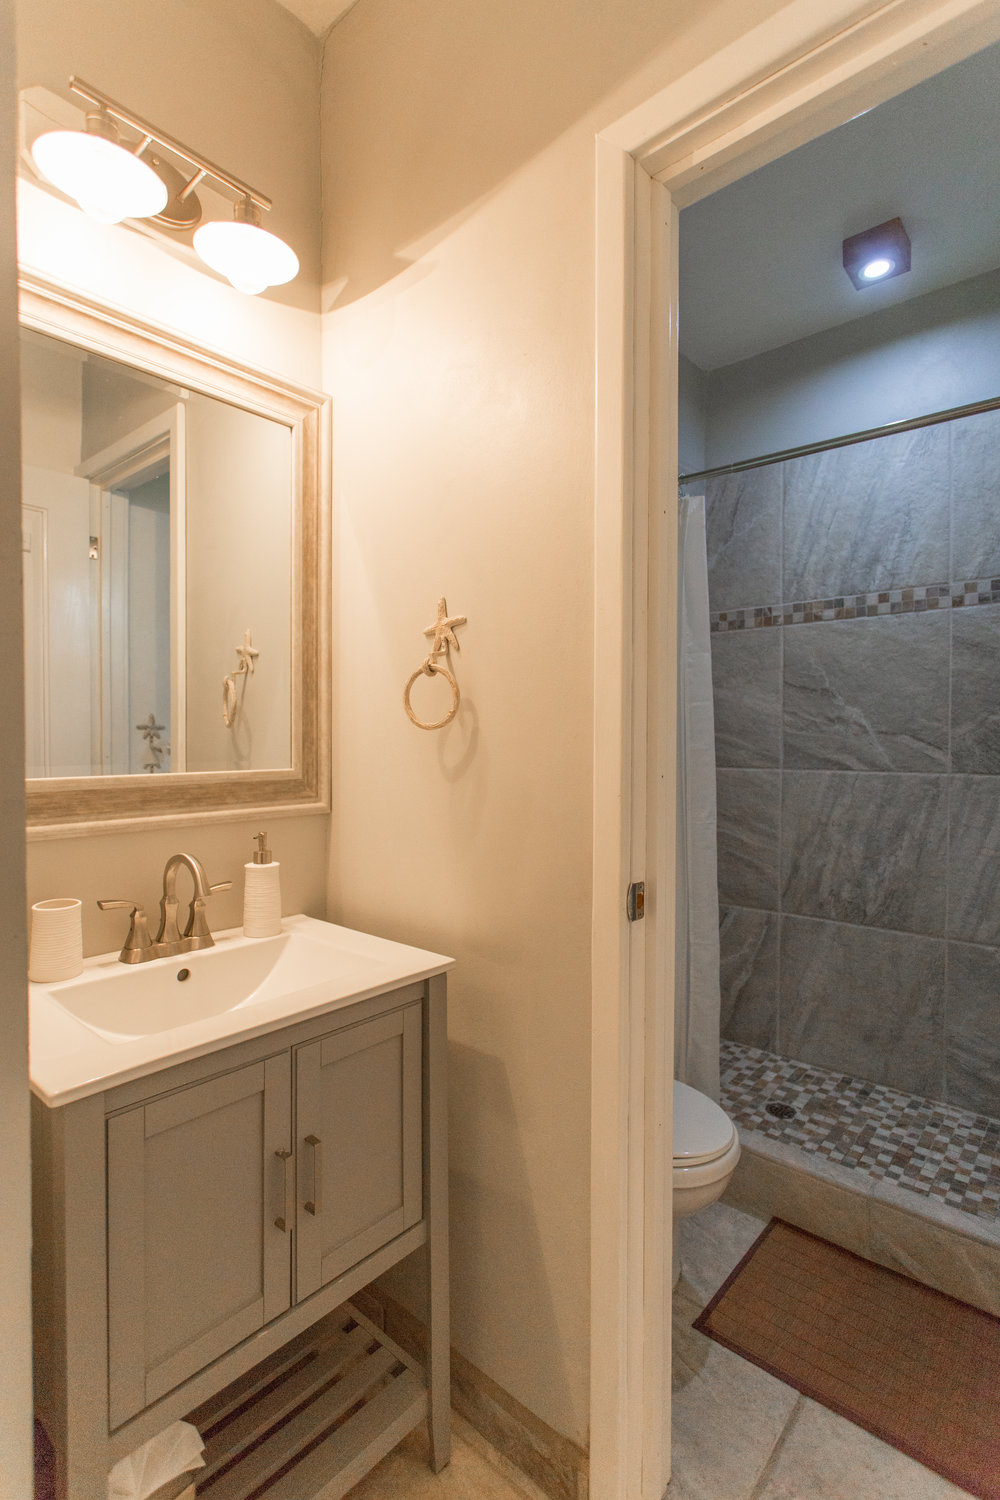 Our serene bathroom area has a separate room with shower and toilet....